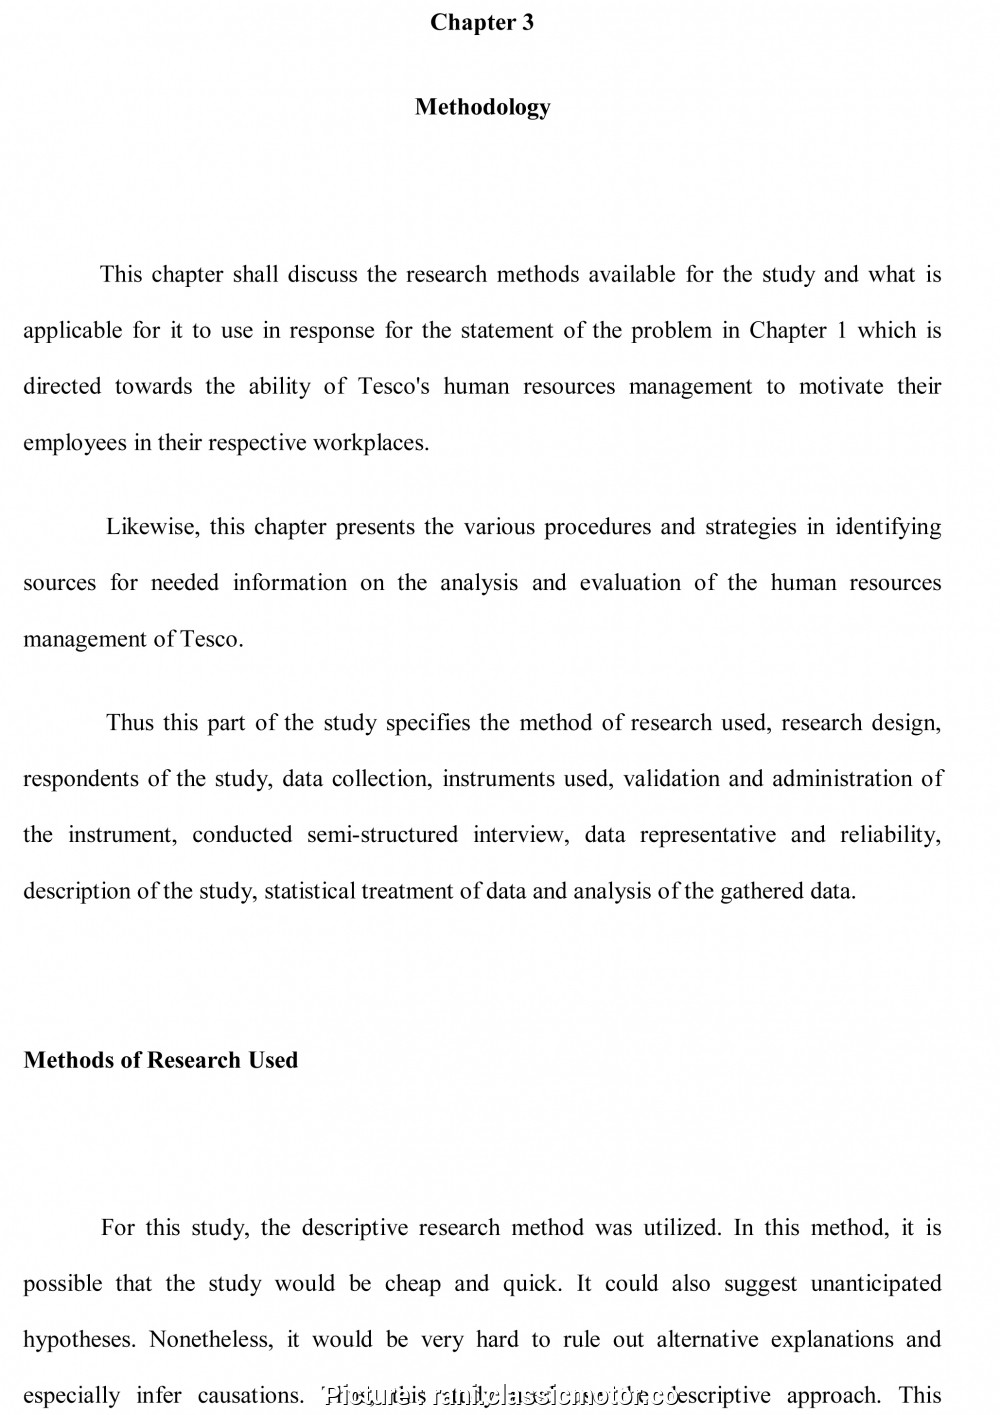 sample business proposal methodology essay examples to write